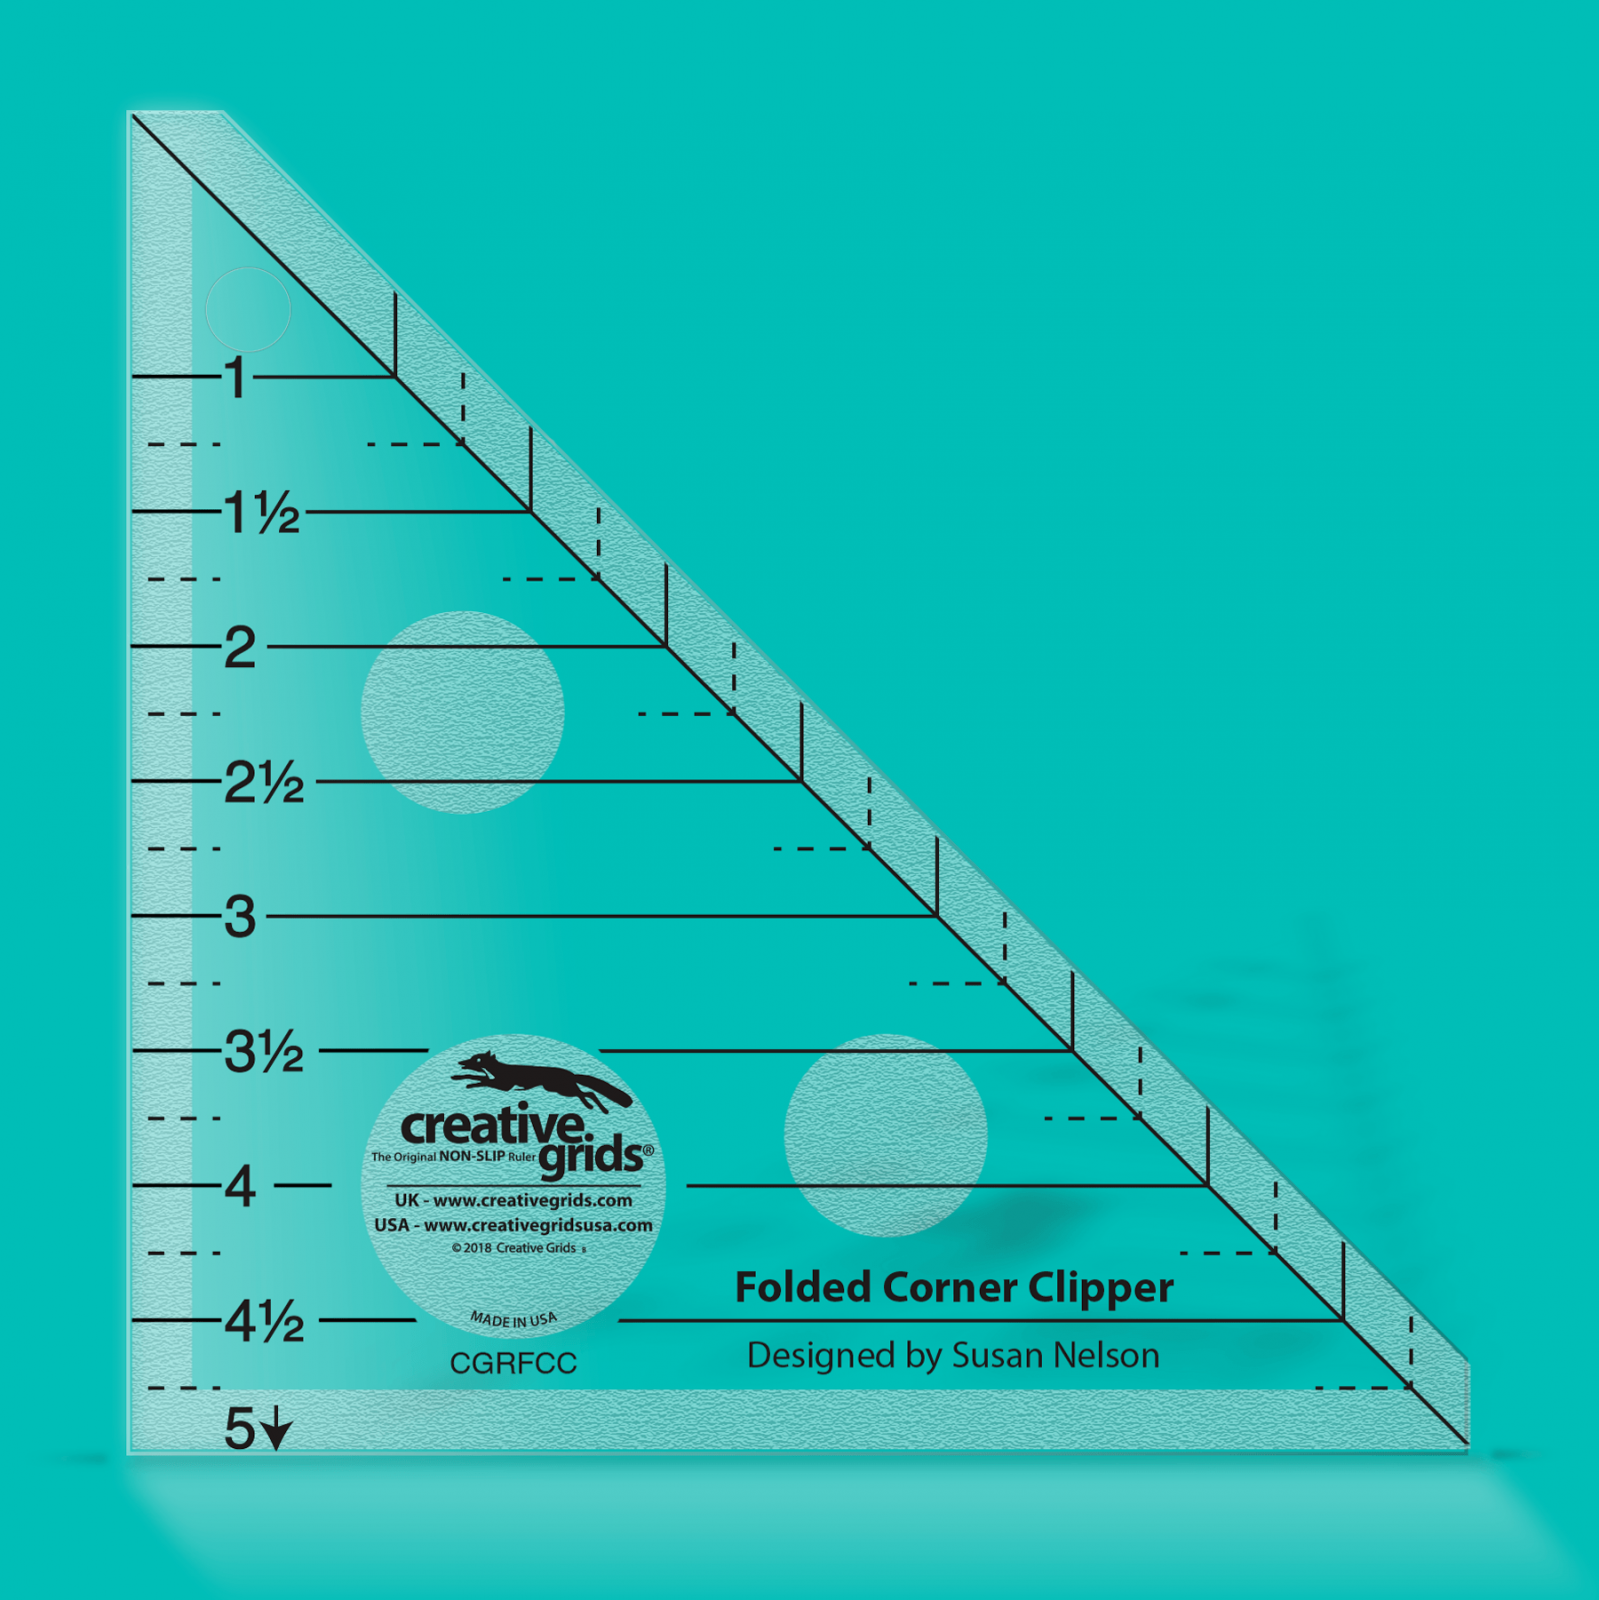 Folded Corner Clipper by Creative Grids